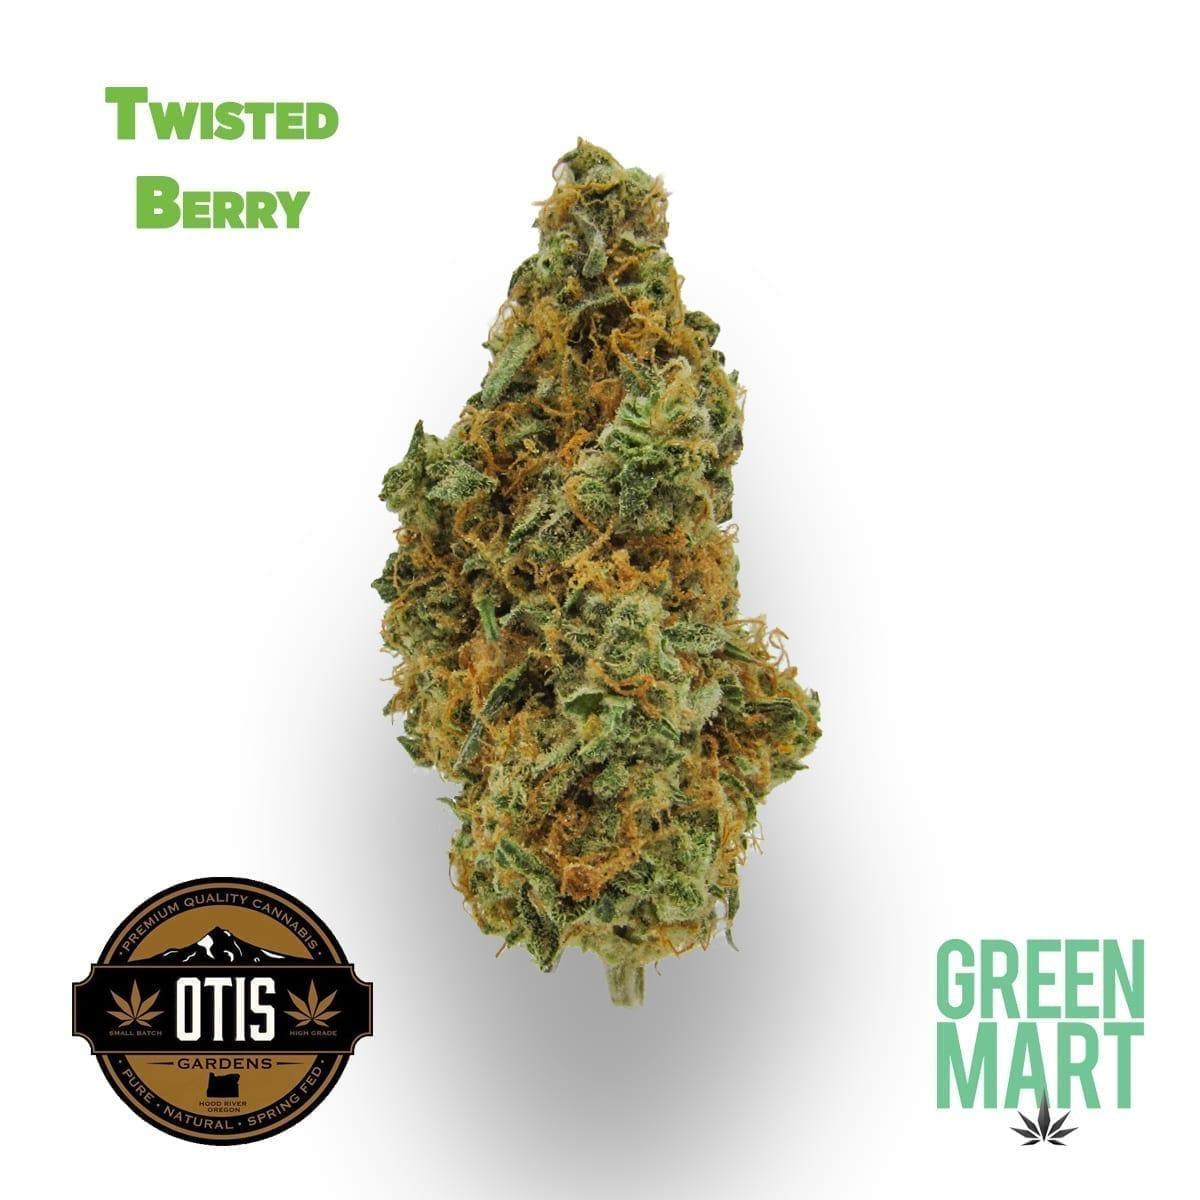 Twisted Berry by Otis Gardens